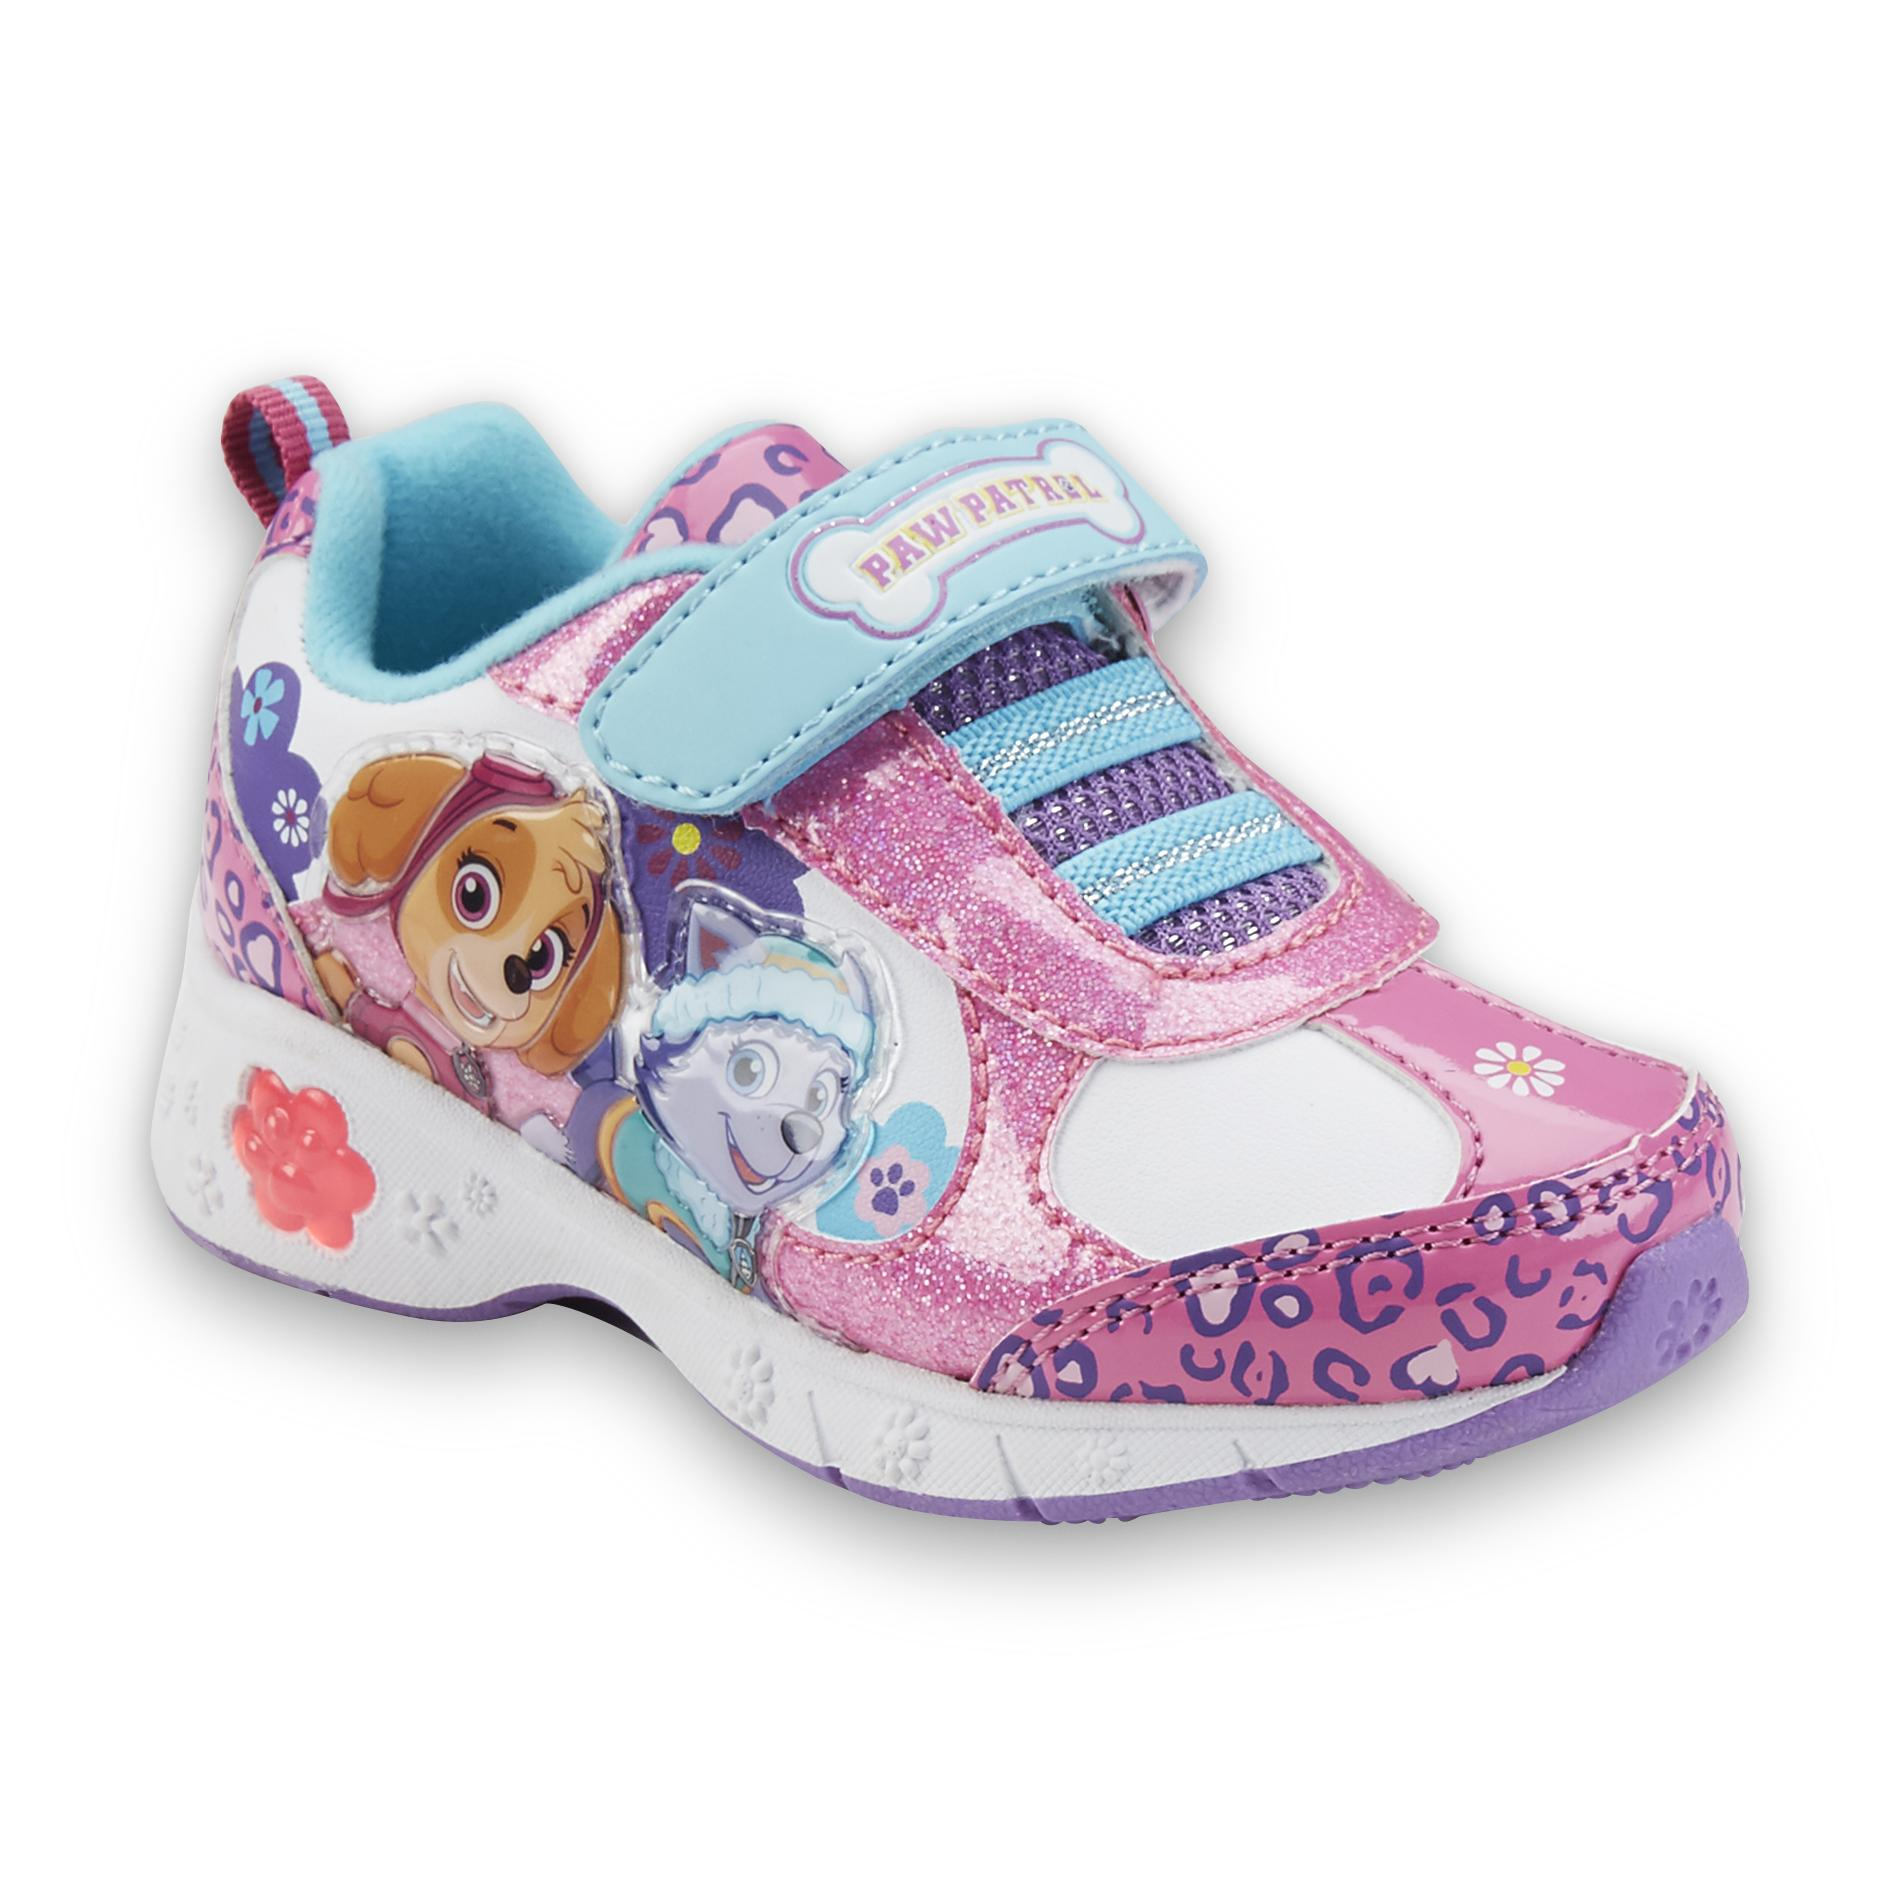 Nickelodeon Toddler Girls PAW Patrol Light Up Athletic